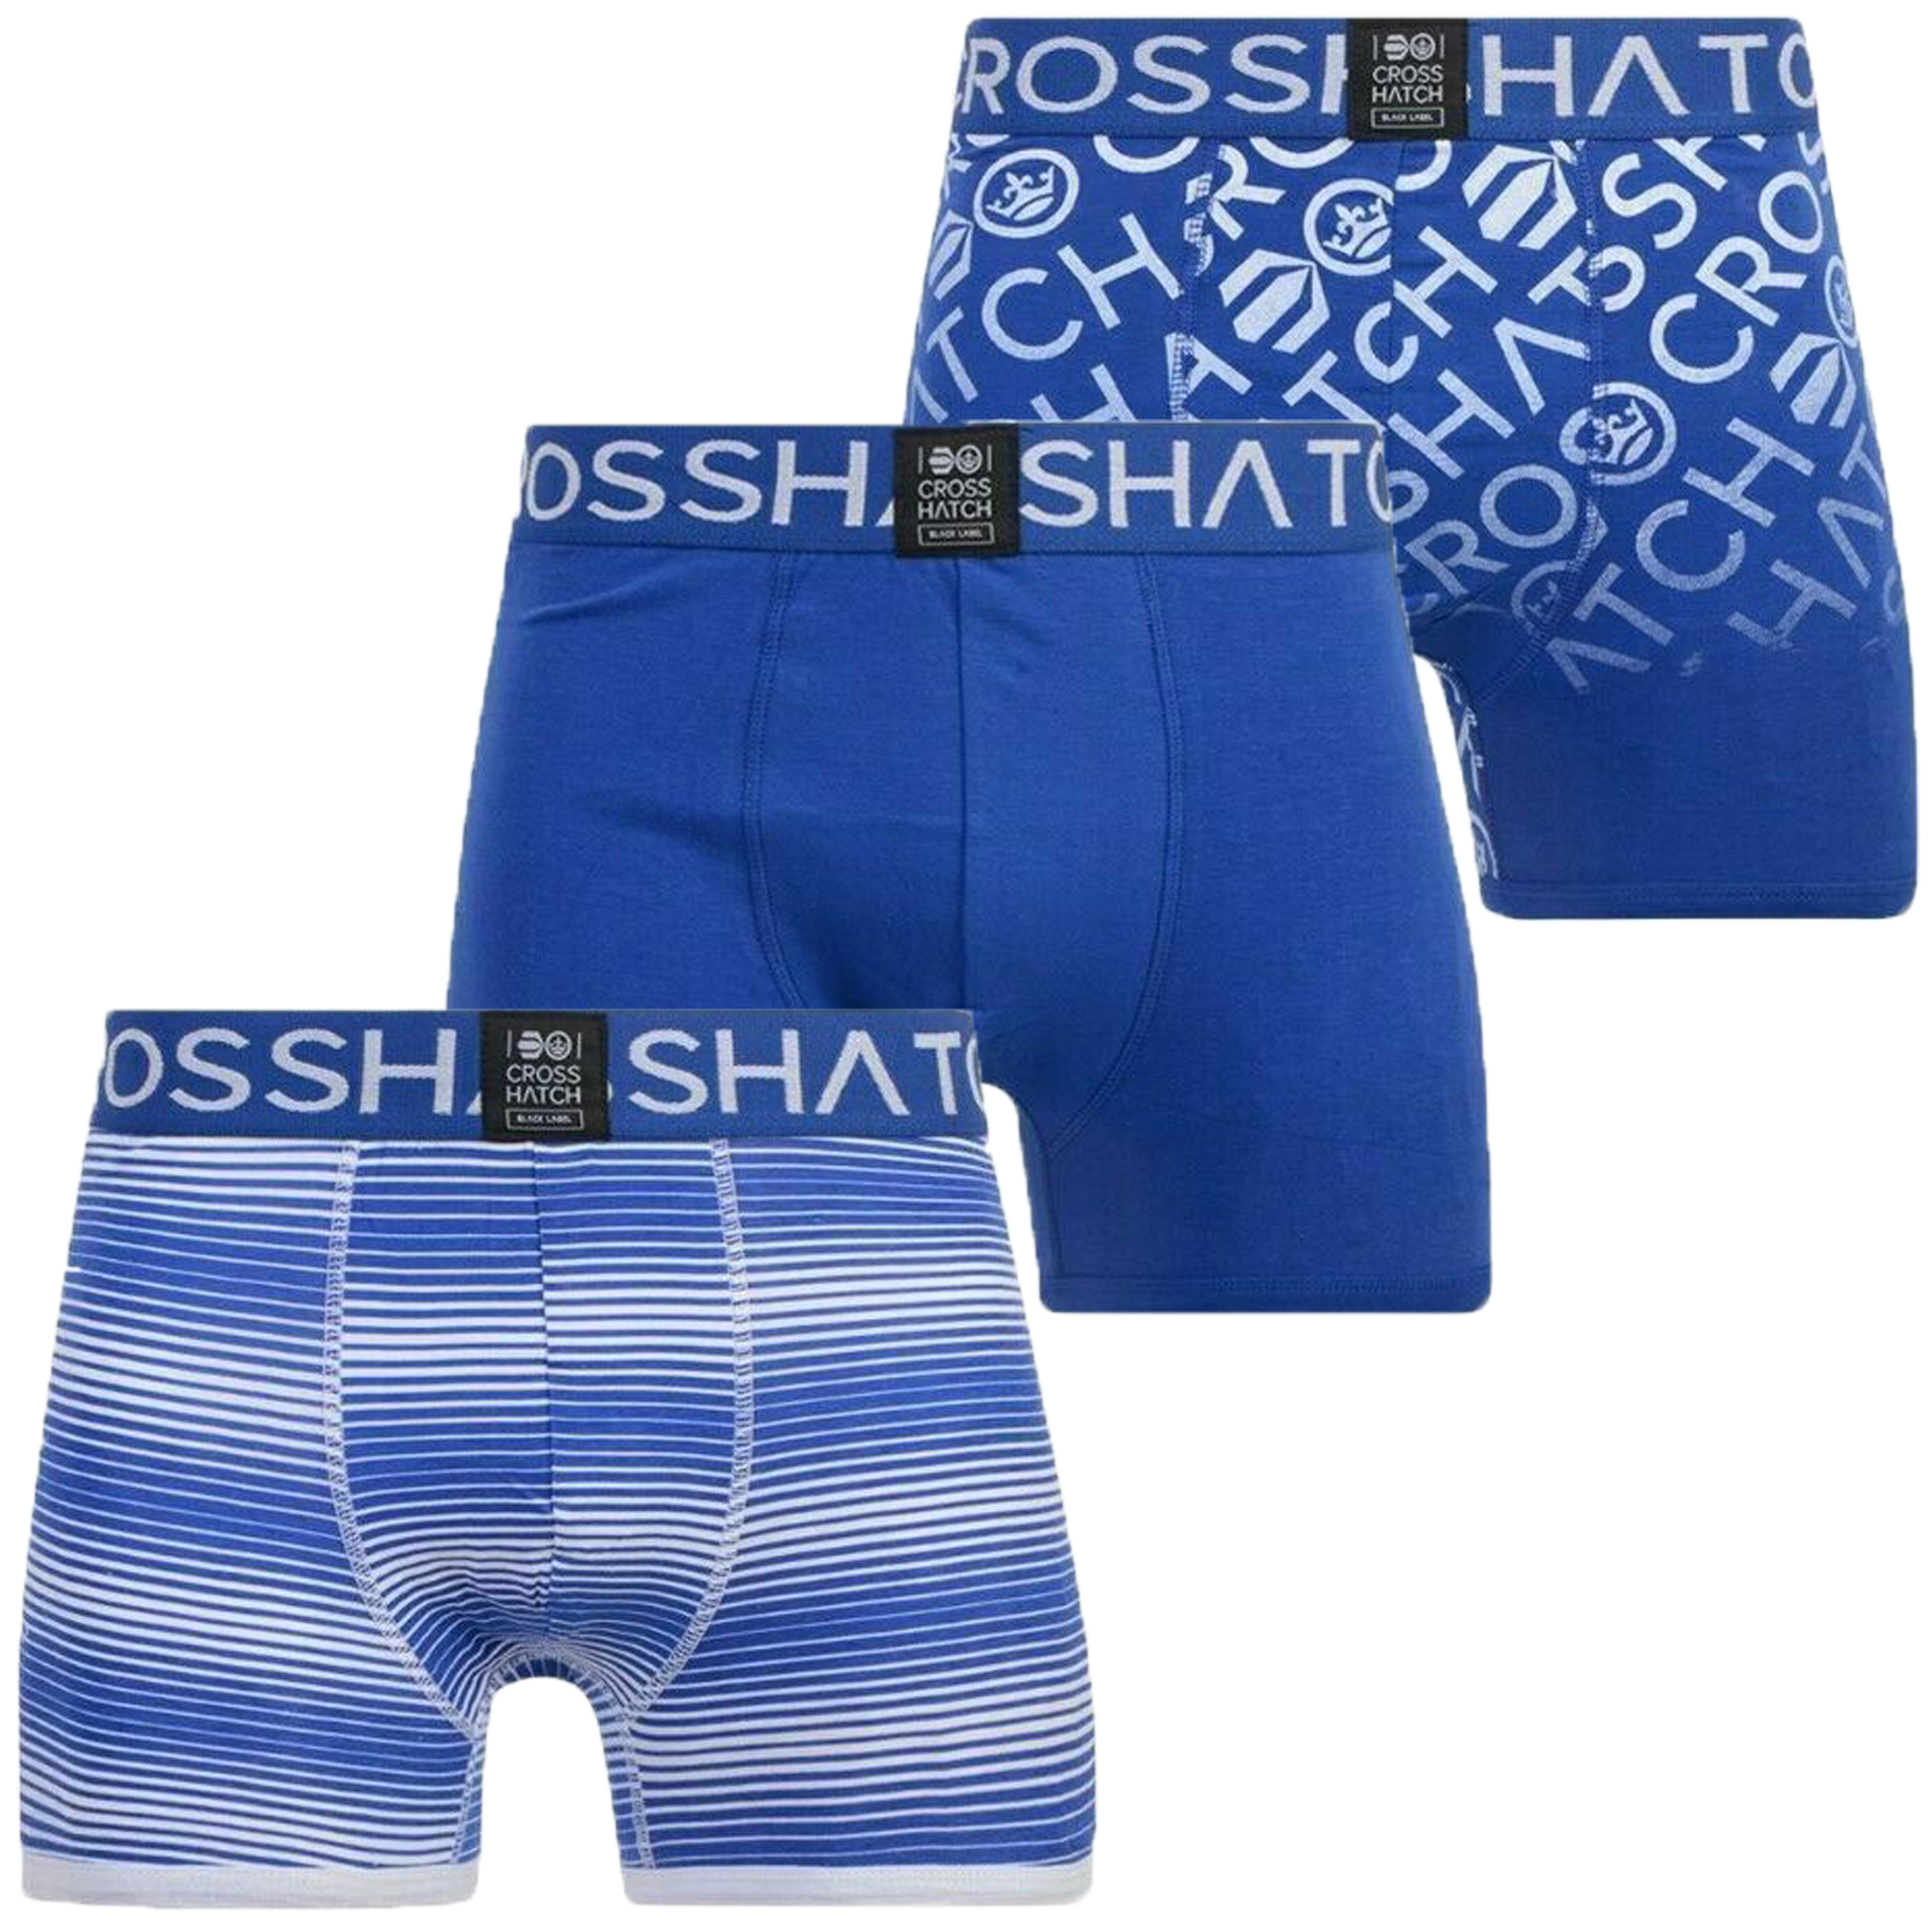 thumbnail 10 - Mens Boxer Crosshatch Underwear 3 Pack Printed Trunks Waistband Logo Branded New